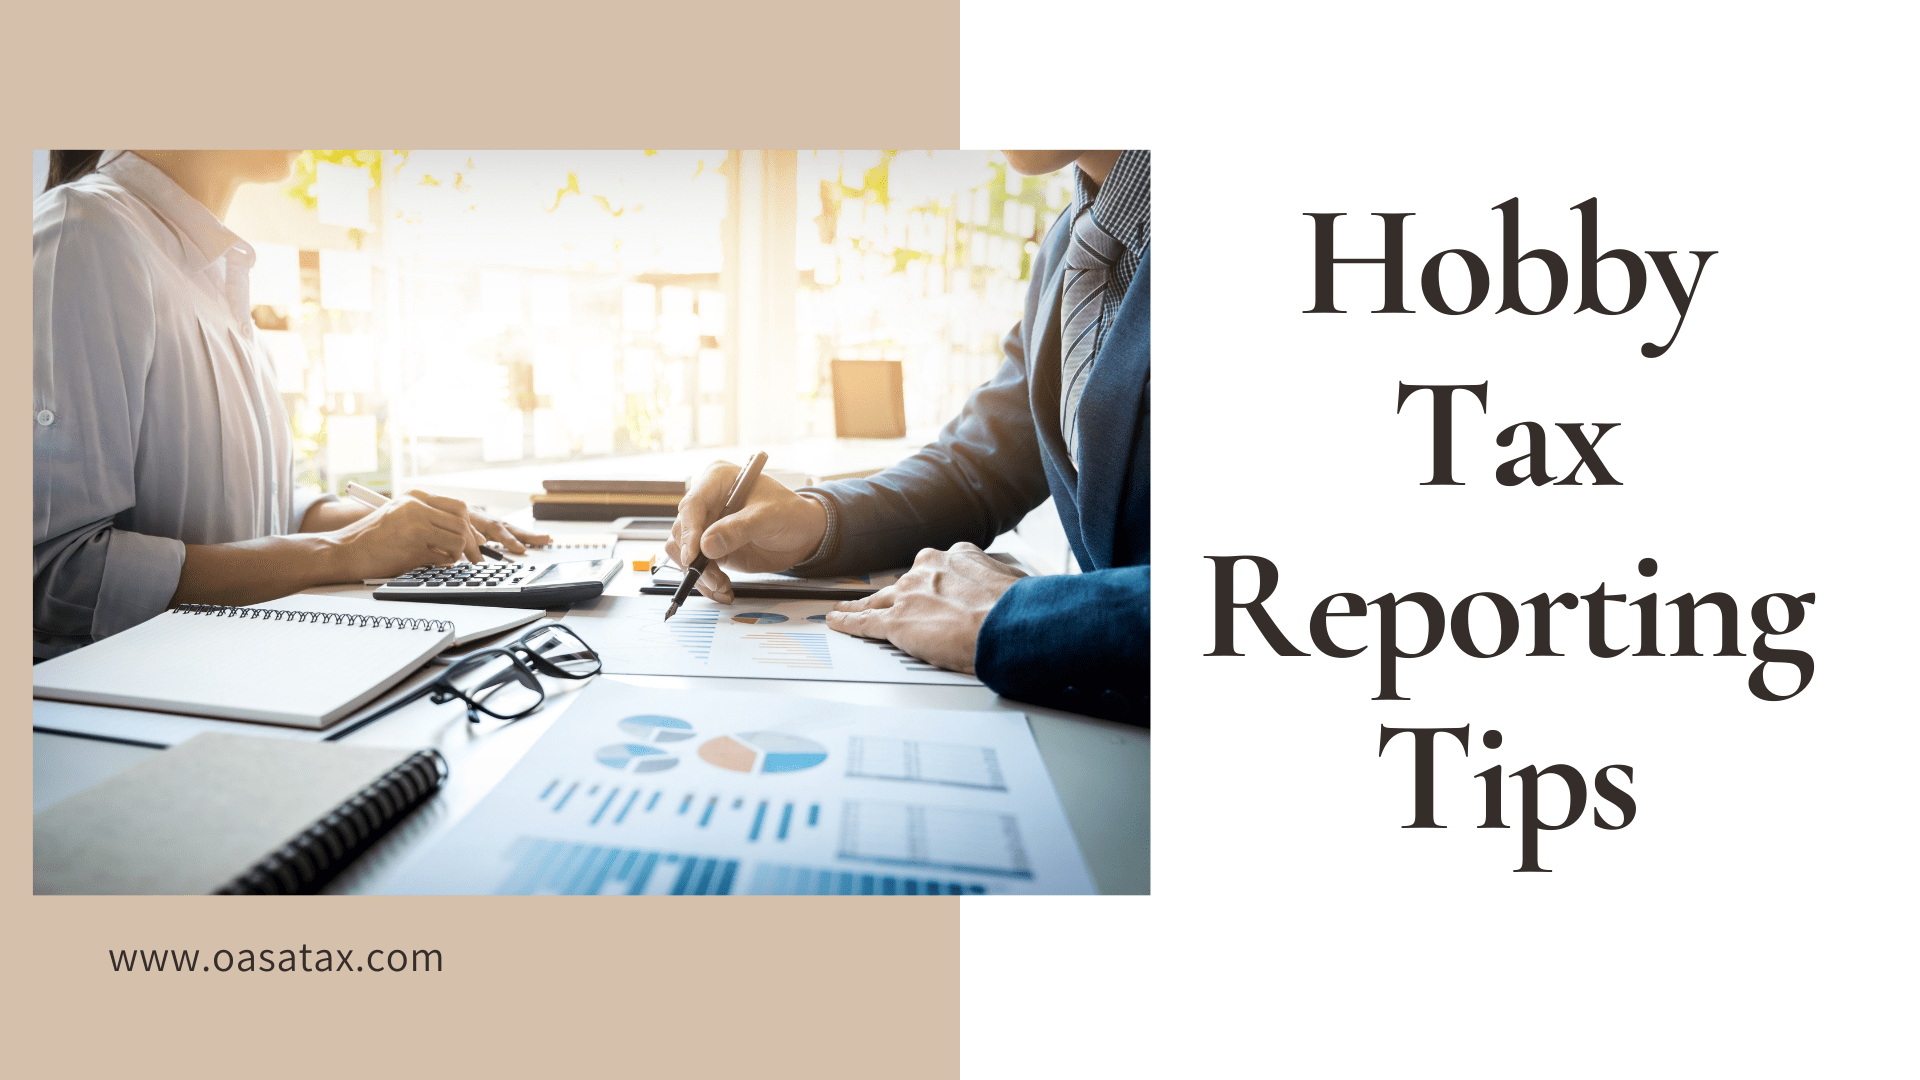 Hobby Tax Reporting Tips